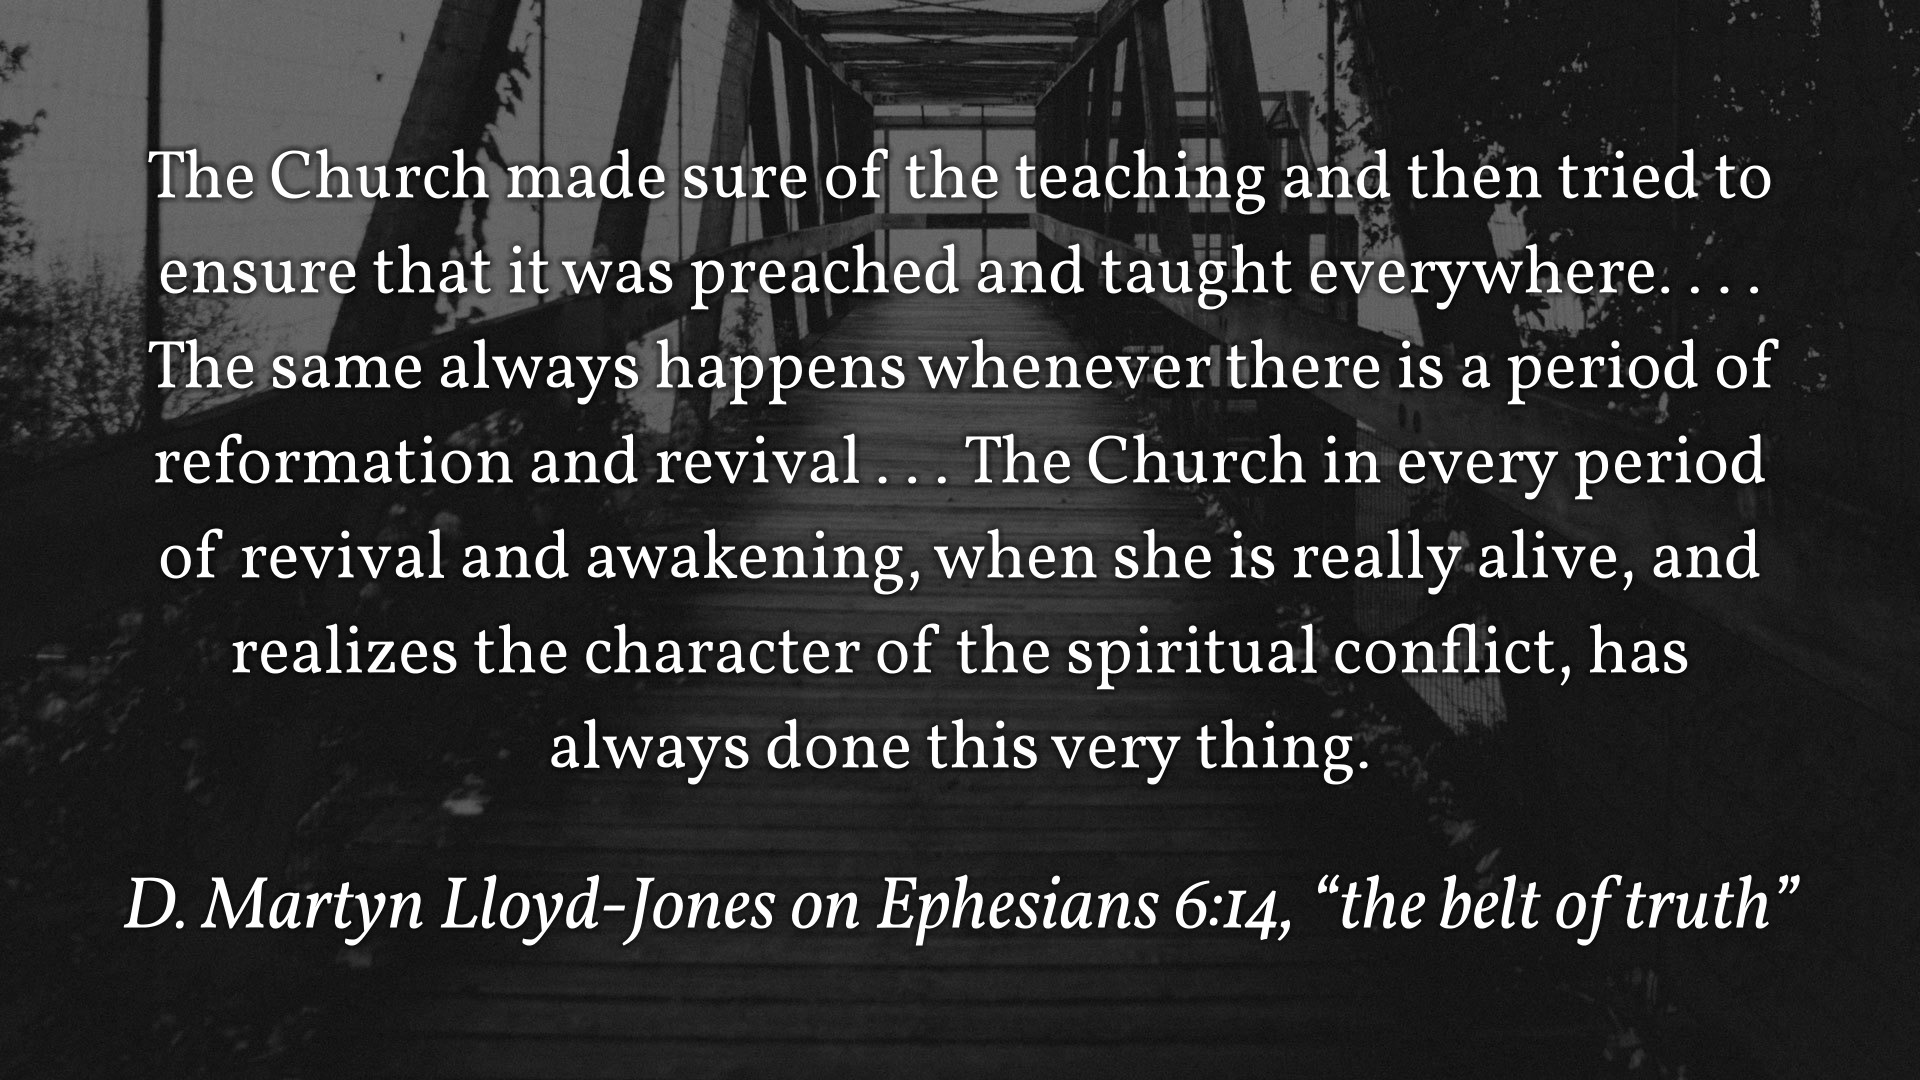 MLJ on Ephesians 6,14